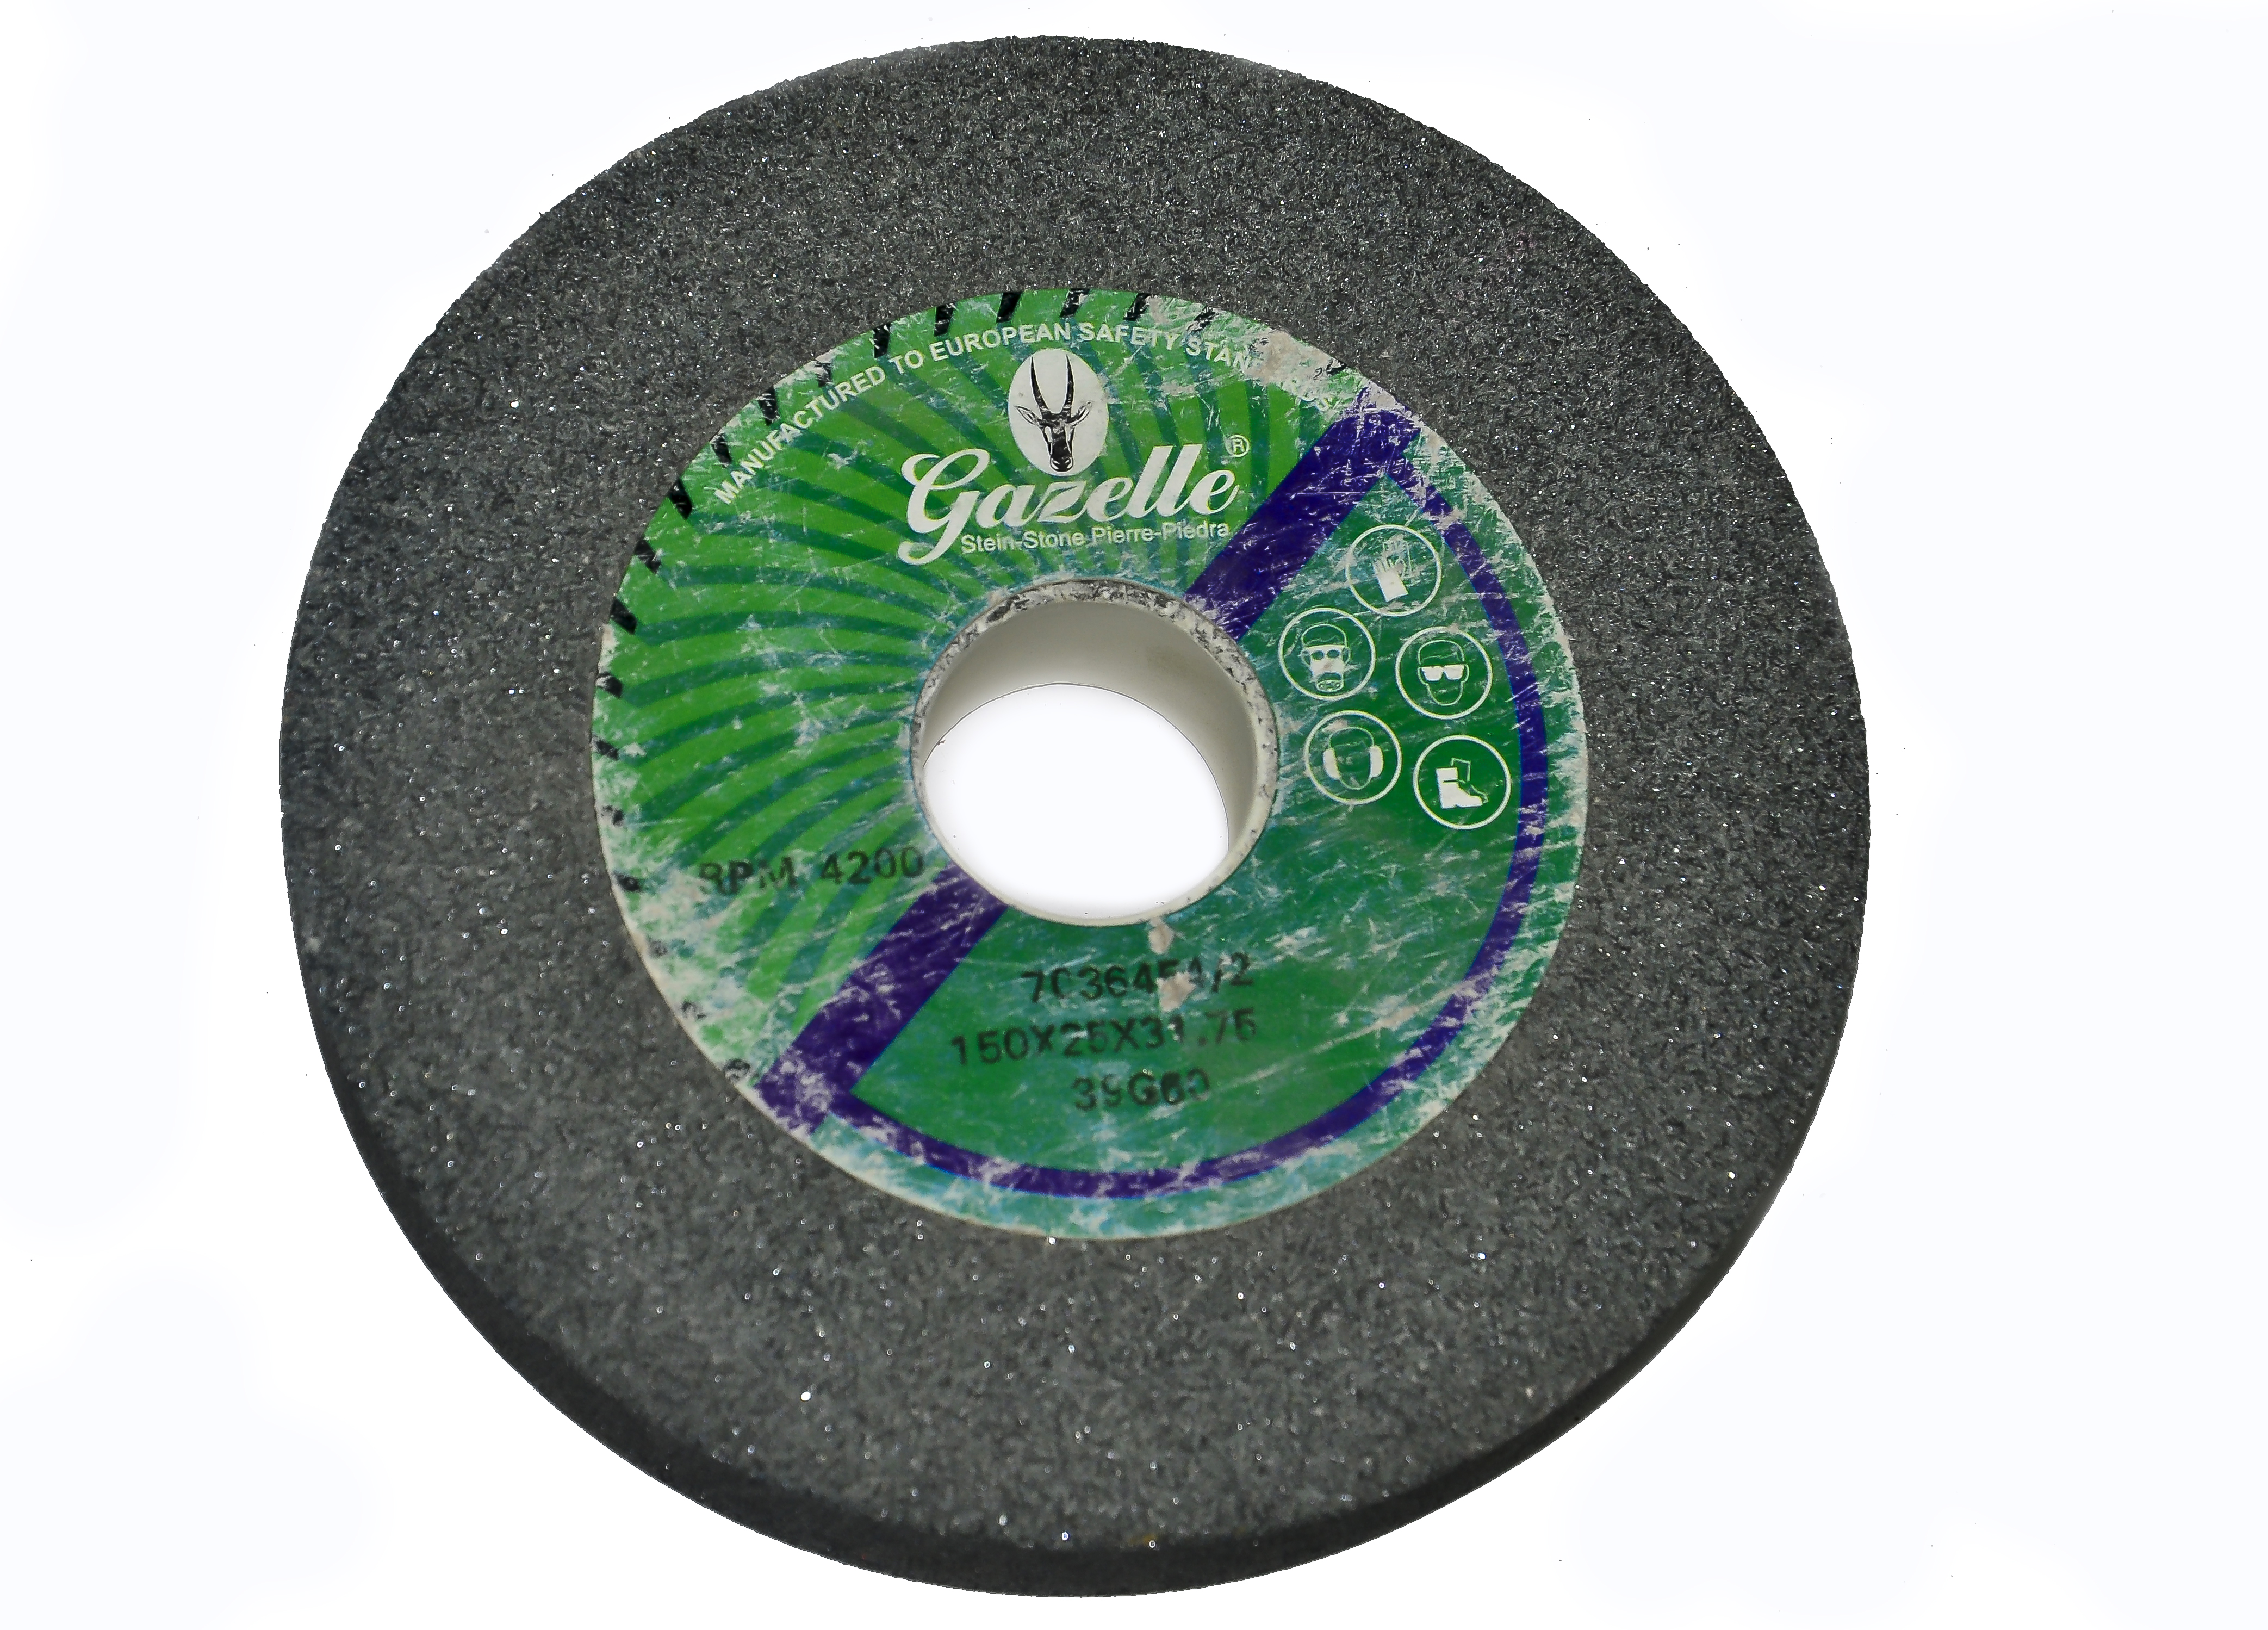 GAZELLE GAZ-20020-46B - Bench Grinding Wheels – Aluminium Oxide 200 x 20 x 31.75mm Rough